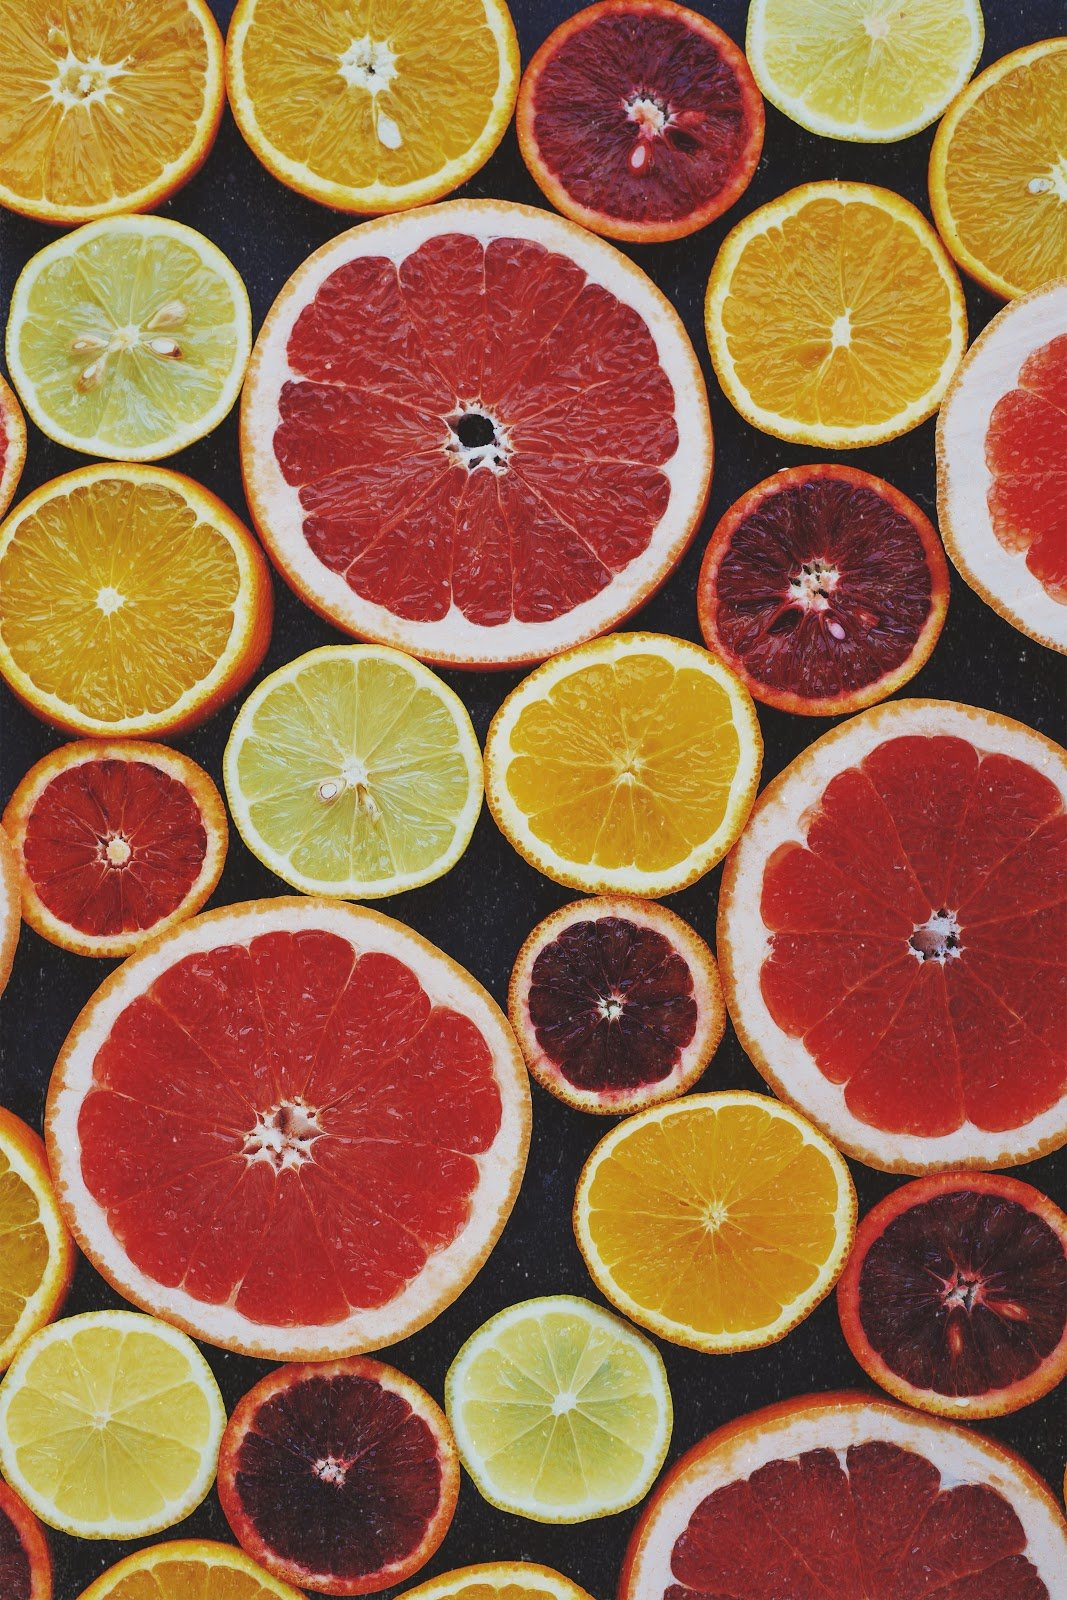 top-view-photo-of-sliced-citrus-fruits